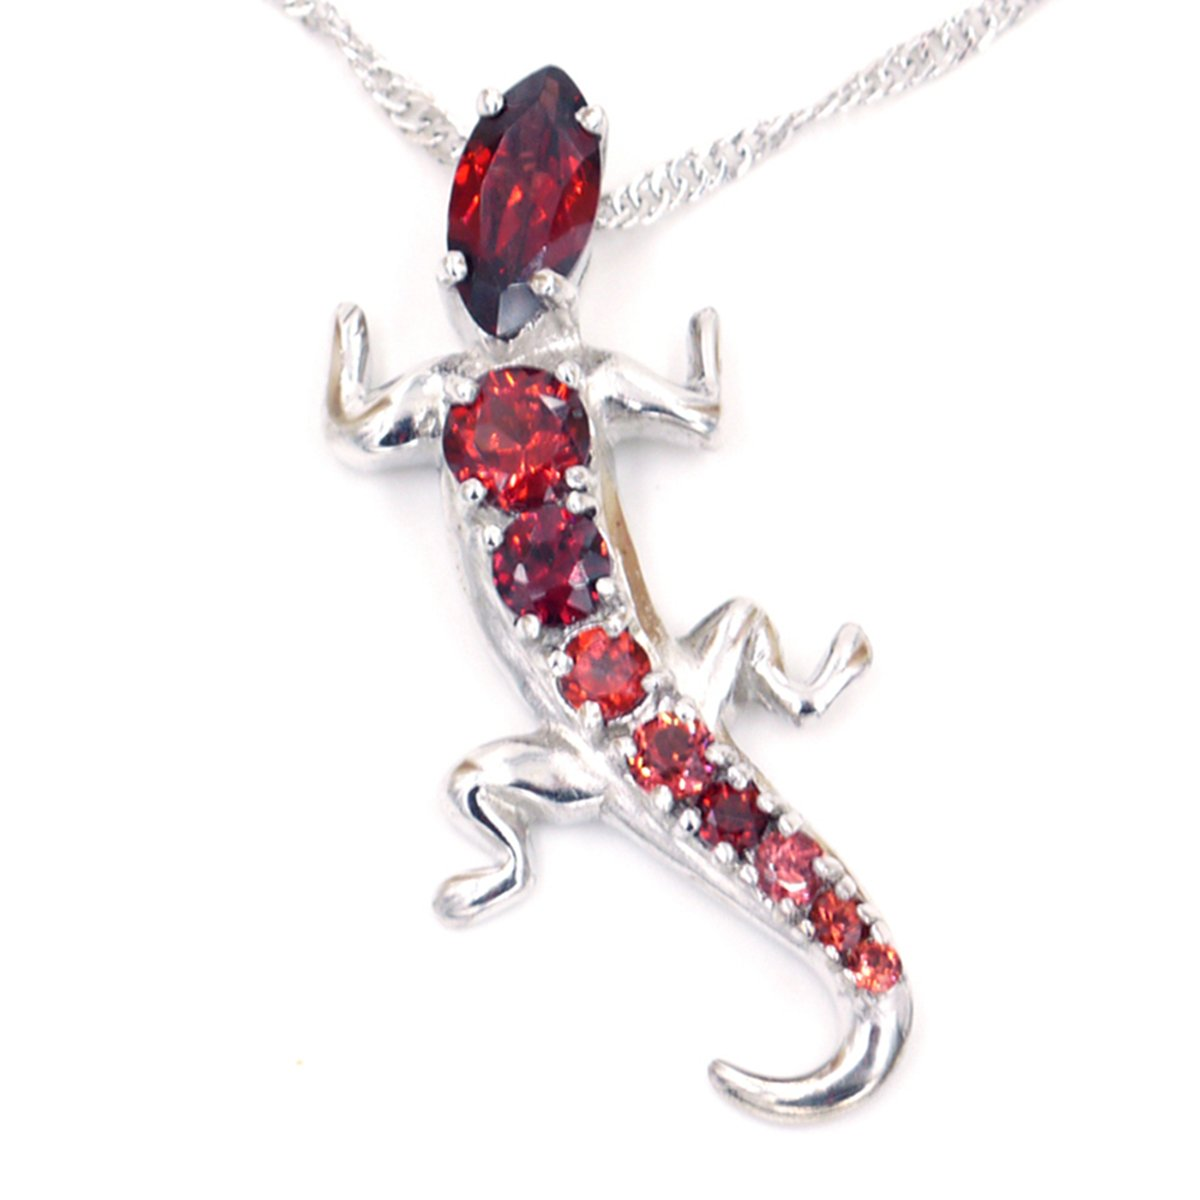 N1026G-Garnet Luxury Lizard Pendent Necklace Anniversary Mothers Day Birthday Gift Present Designer Jewelry